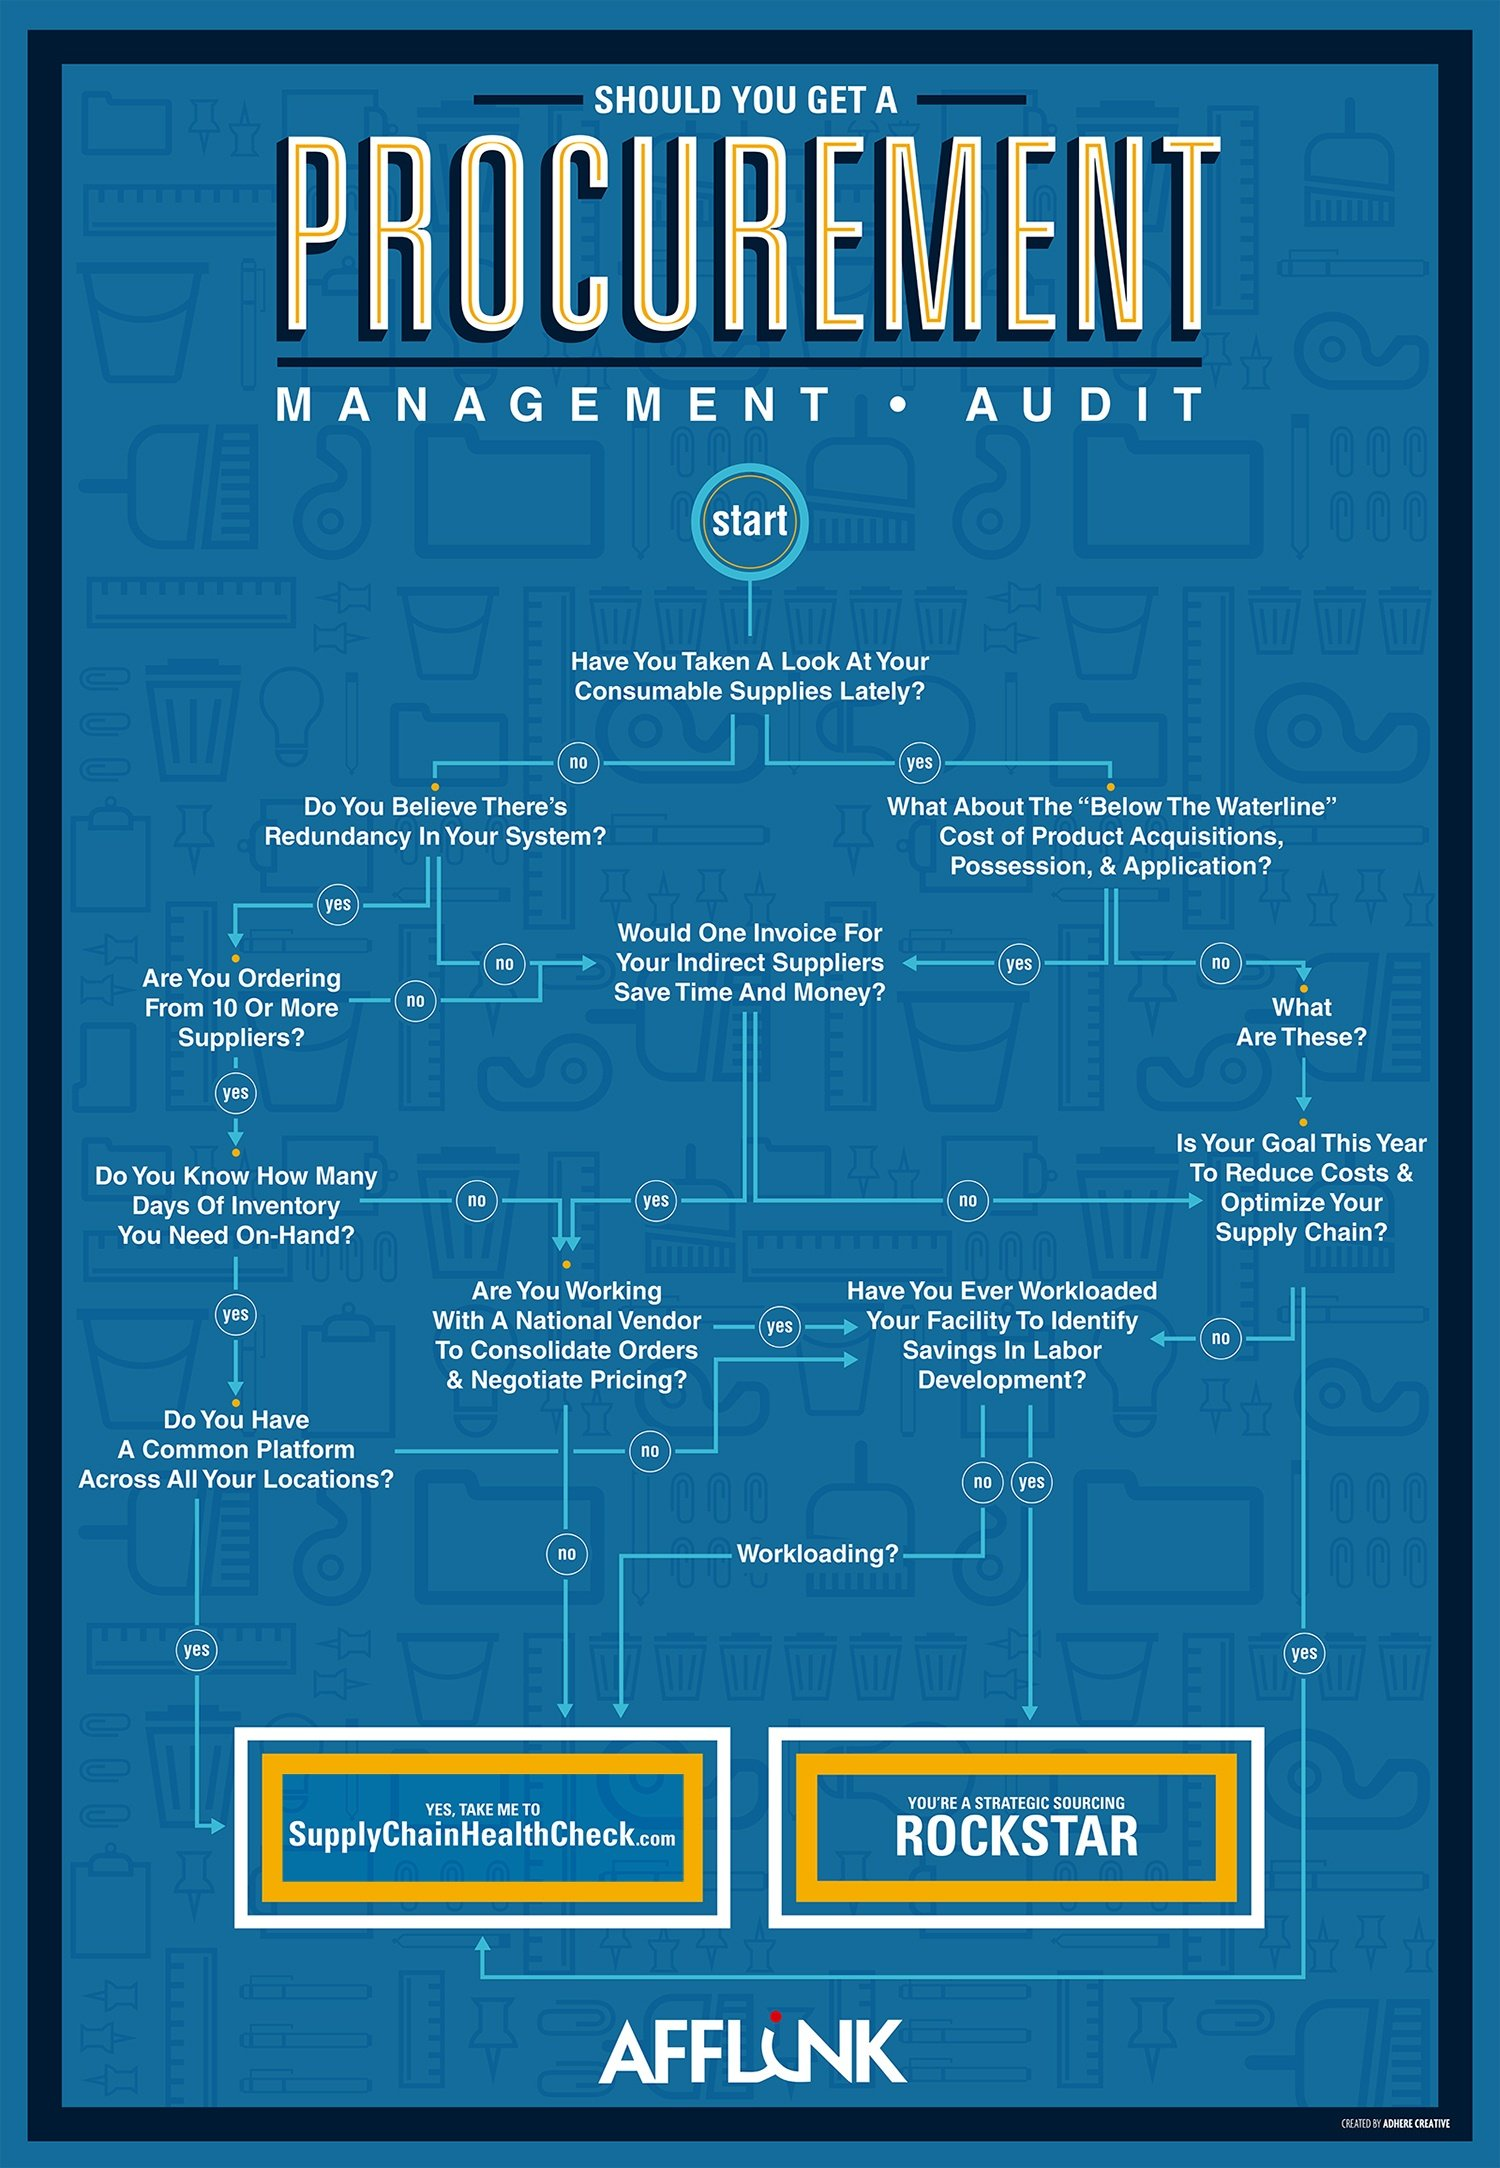 Should_You_Get_a_Procurement_Management_Audit